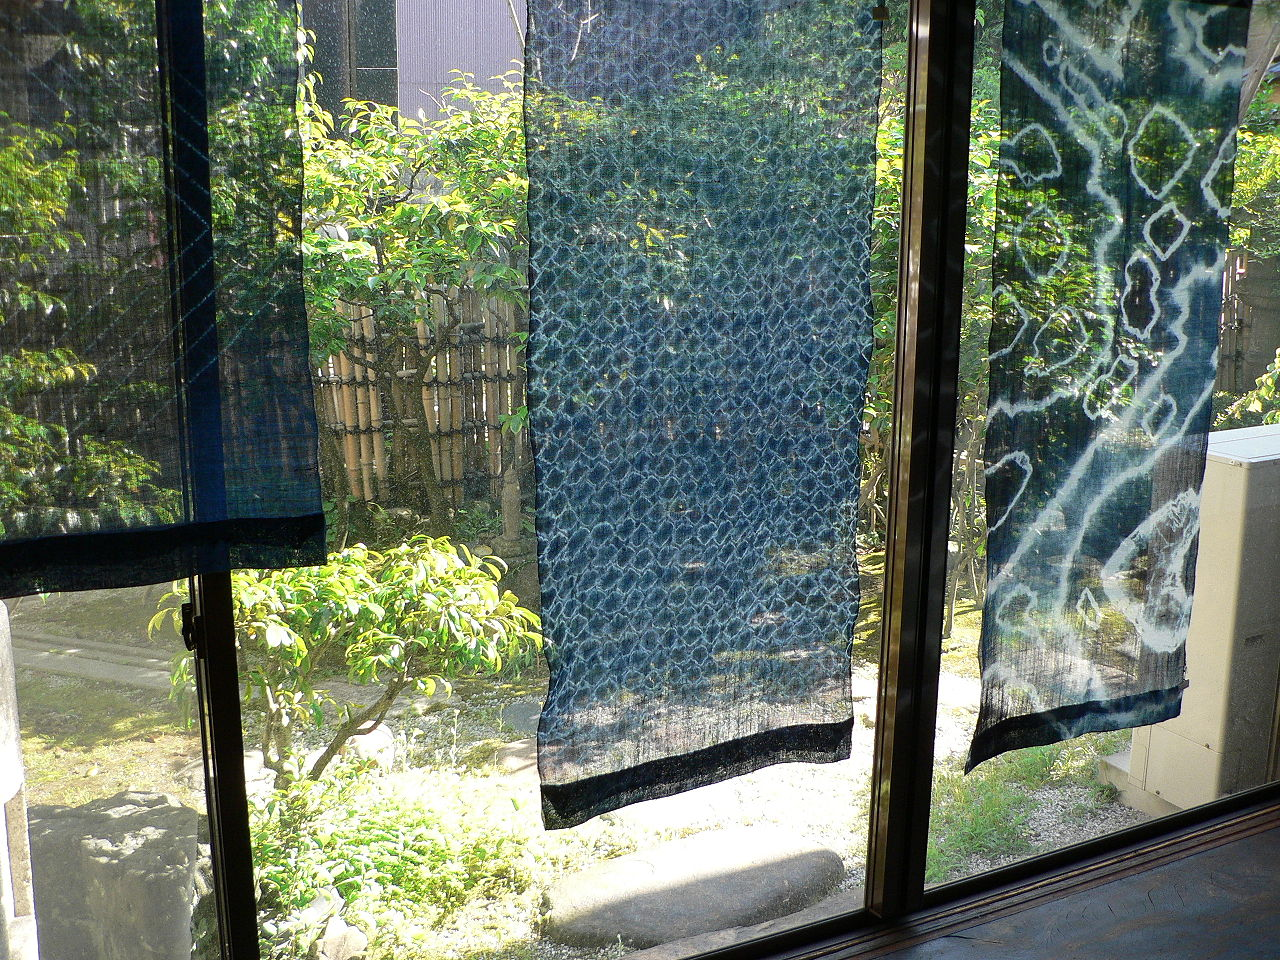 https://upload.wikimedia.org/wikipedia/commons/thumb/3/36/Sunlight_filters_through_tied-and-indigo-dyed_%28shibori%29_fabric.jpg/1280px-Sunlight_filters_through_tied-and-indigo-dyed_%28shibori%29_fabric.jpg